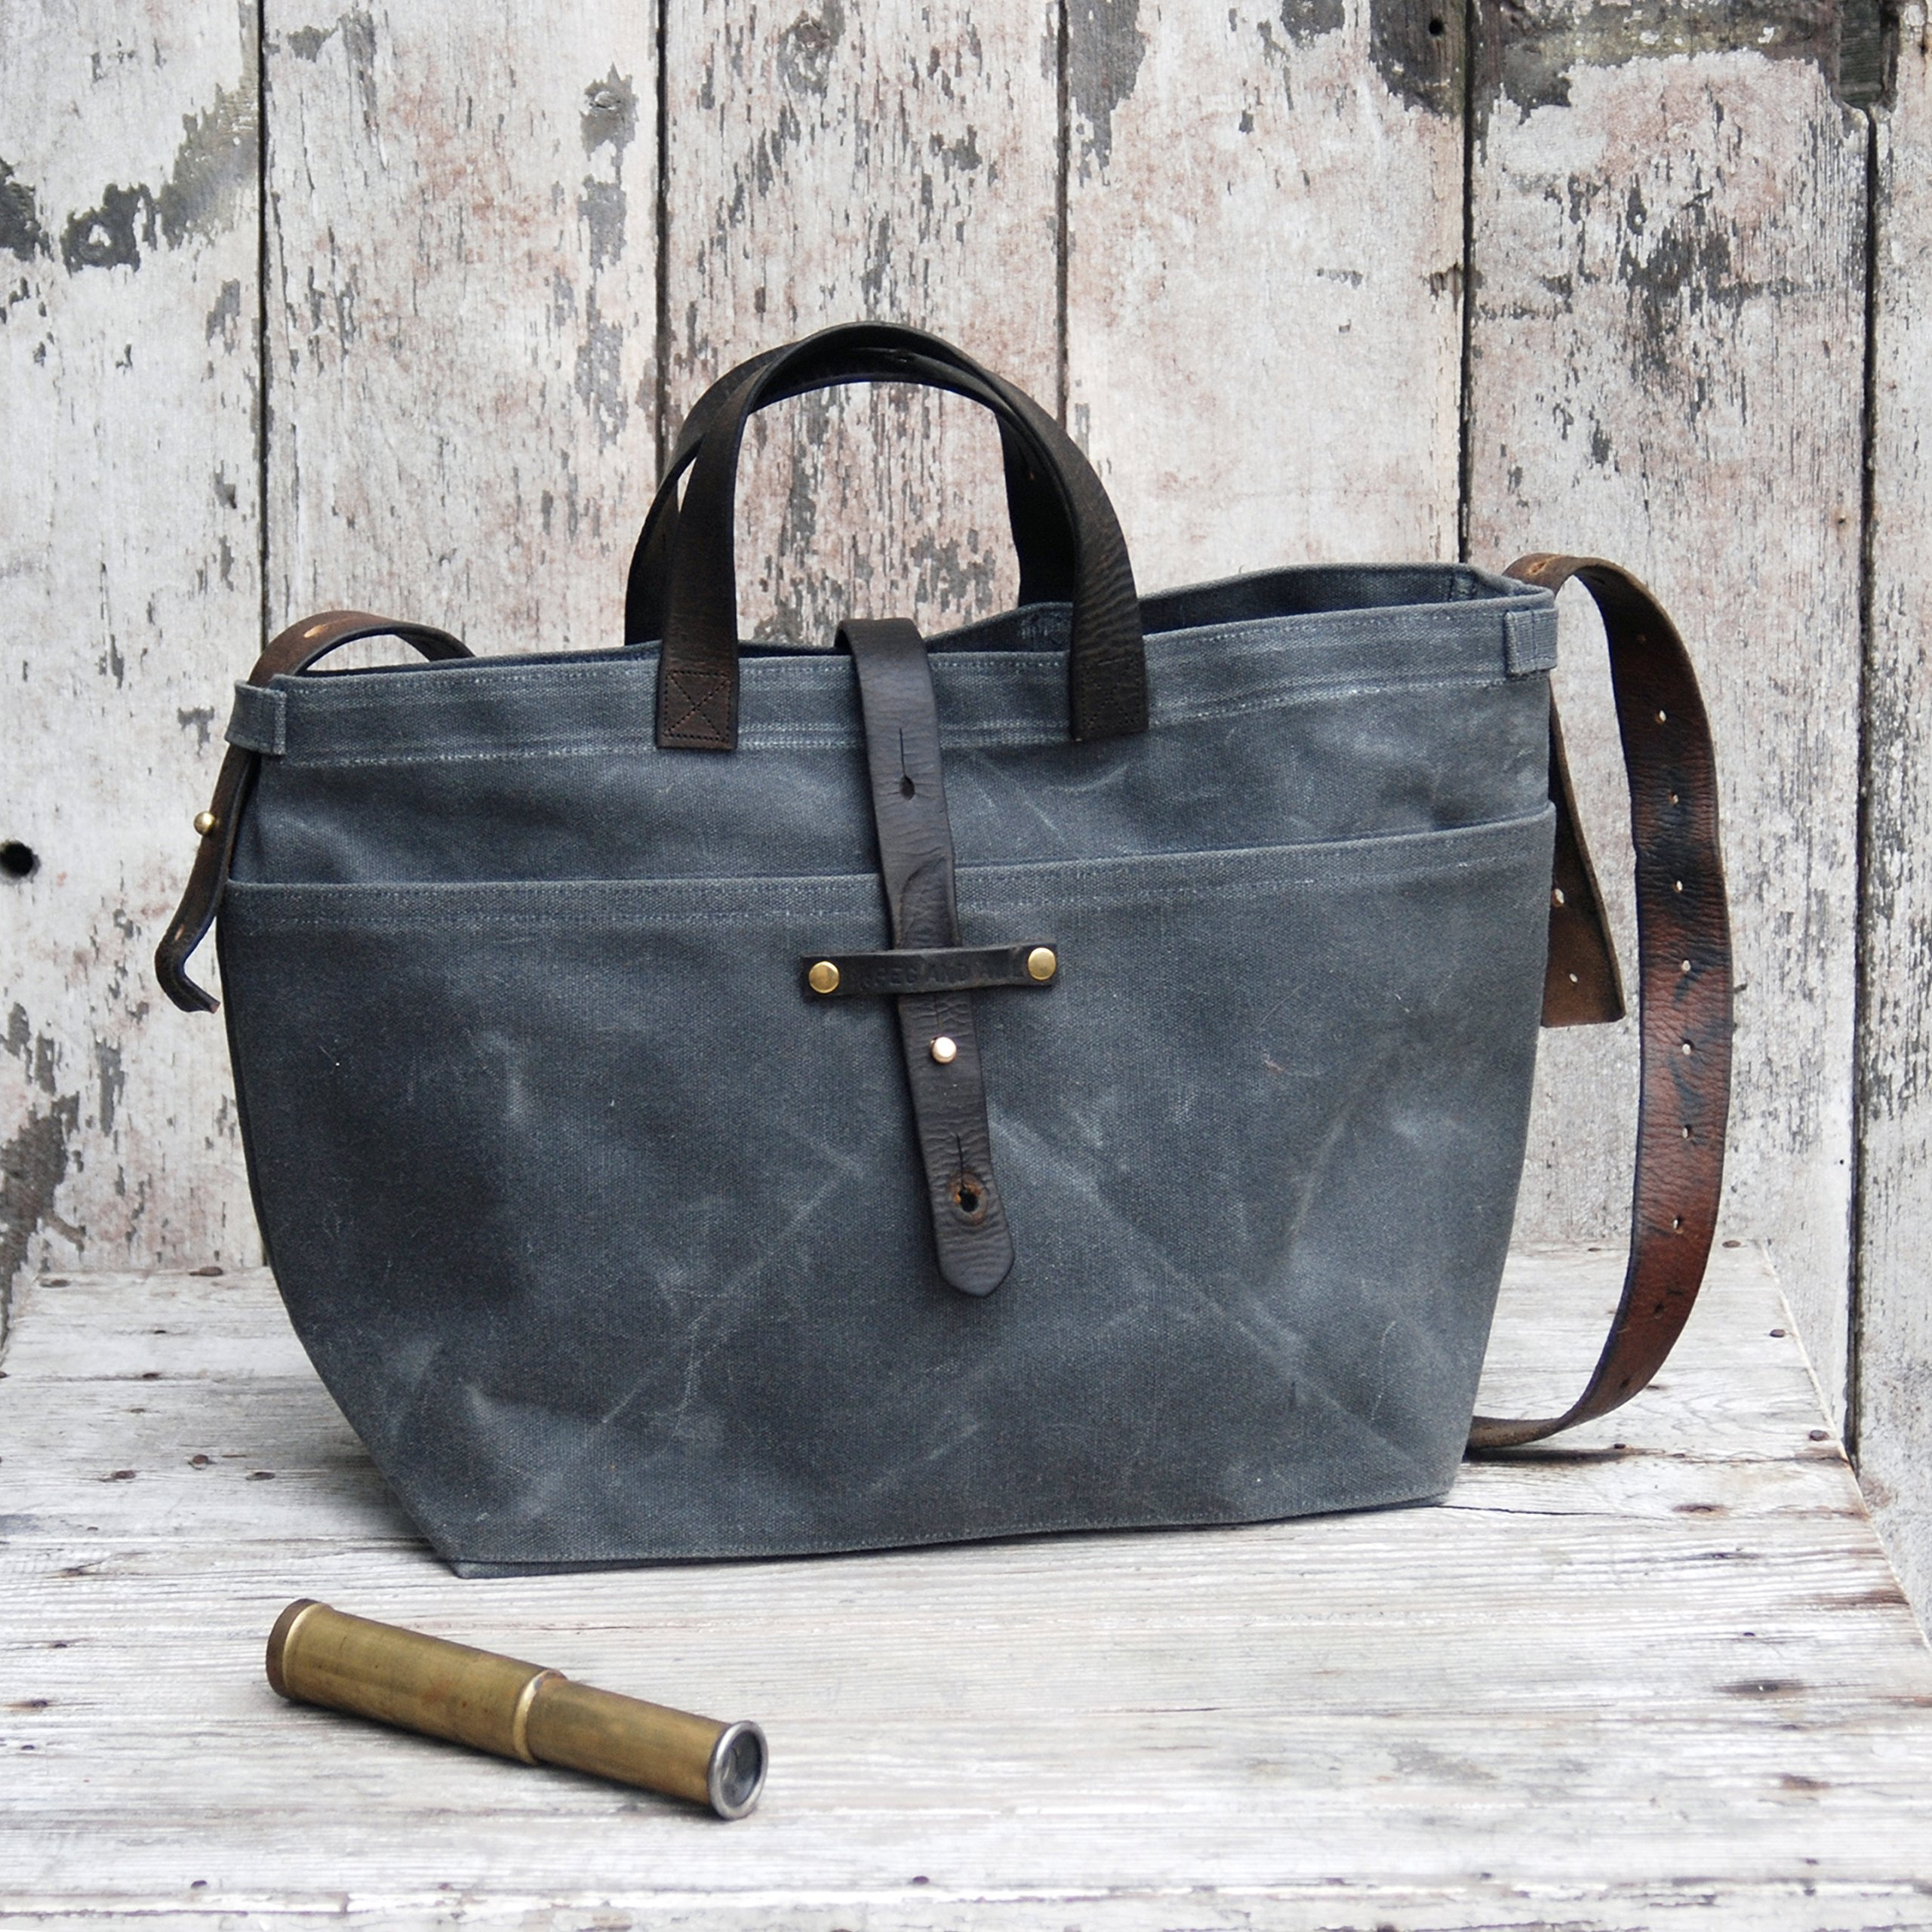 Waxed Canvas Tote in Slate with Zipper by Peg and Awl